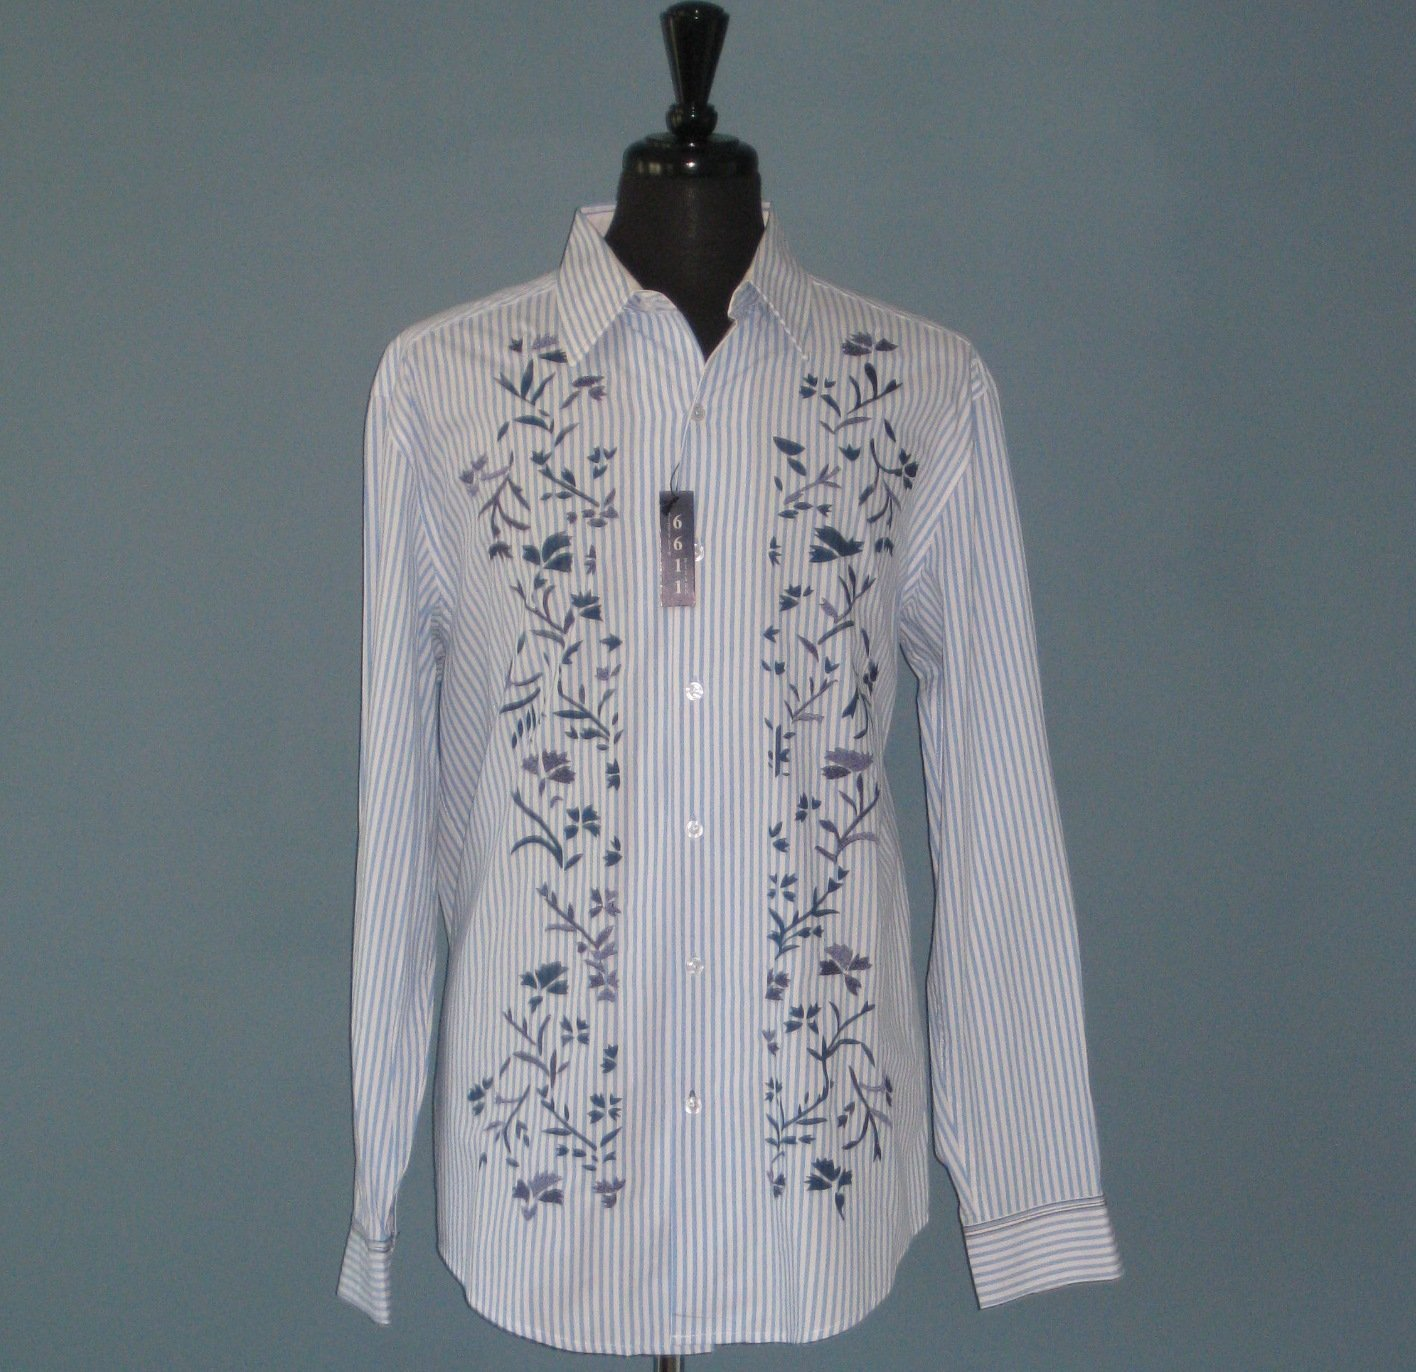 NWT 6611 Sixty Six Eleven Men's L/S Blue & White Leaf Embroidered 100% Cotton Shirt - XL